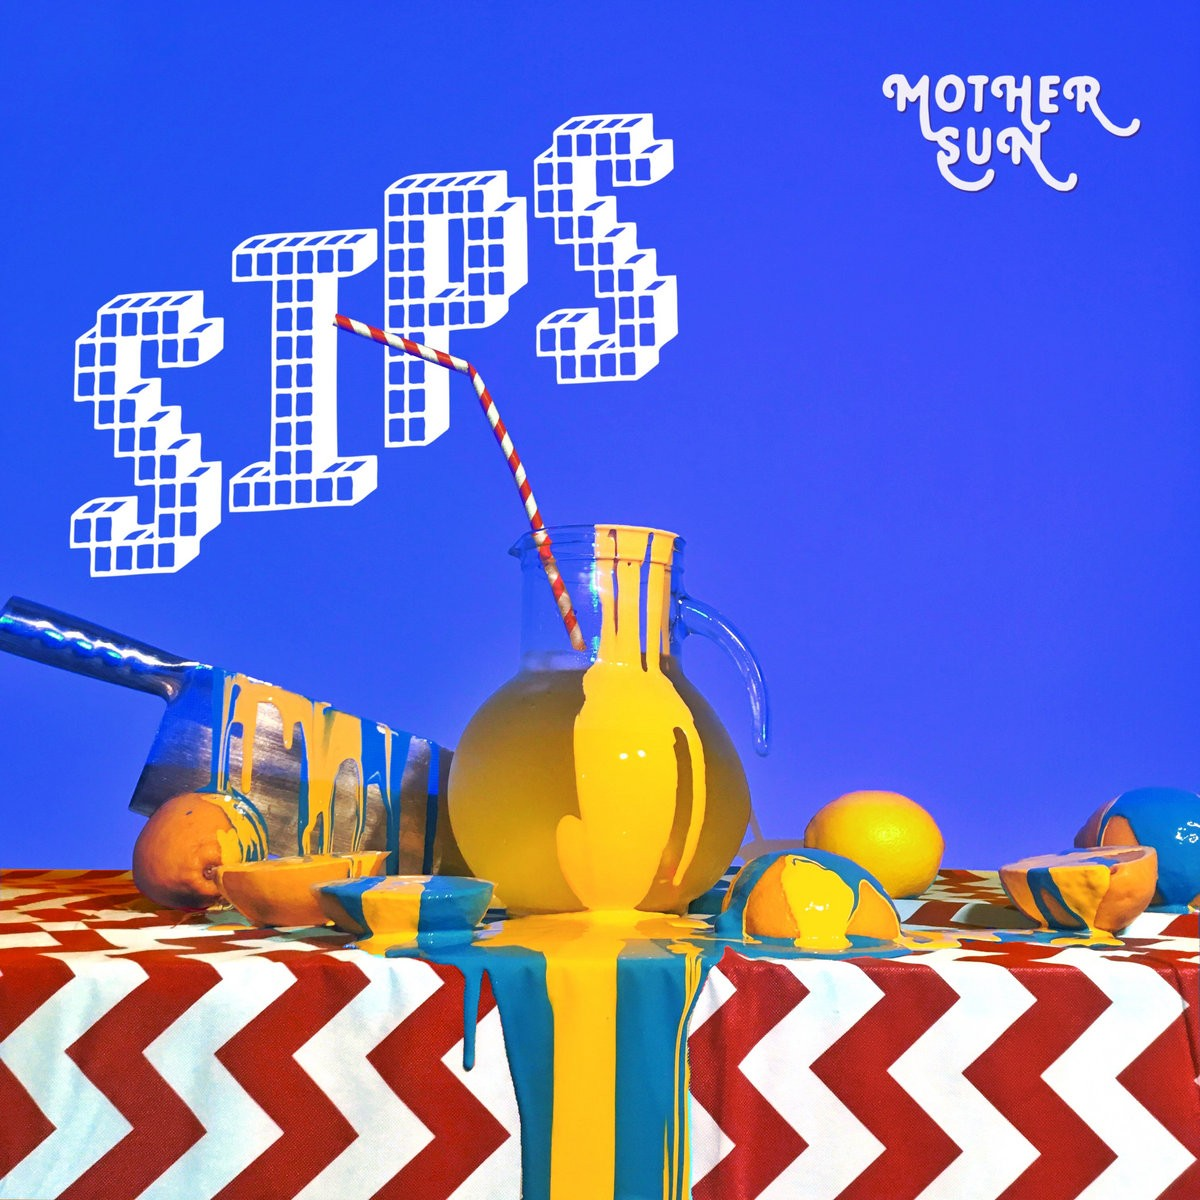 Mother Sun Take Refreshing 'SIPS' of Saccharine Psych-Pop